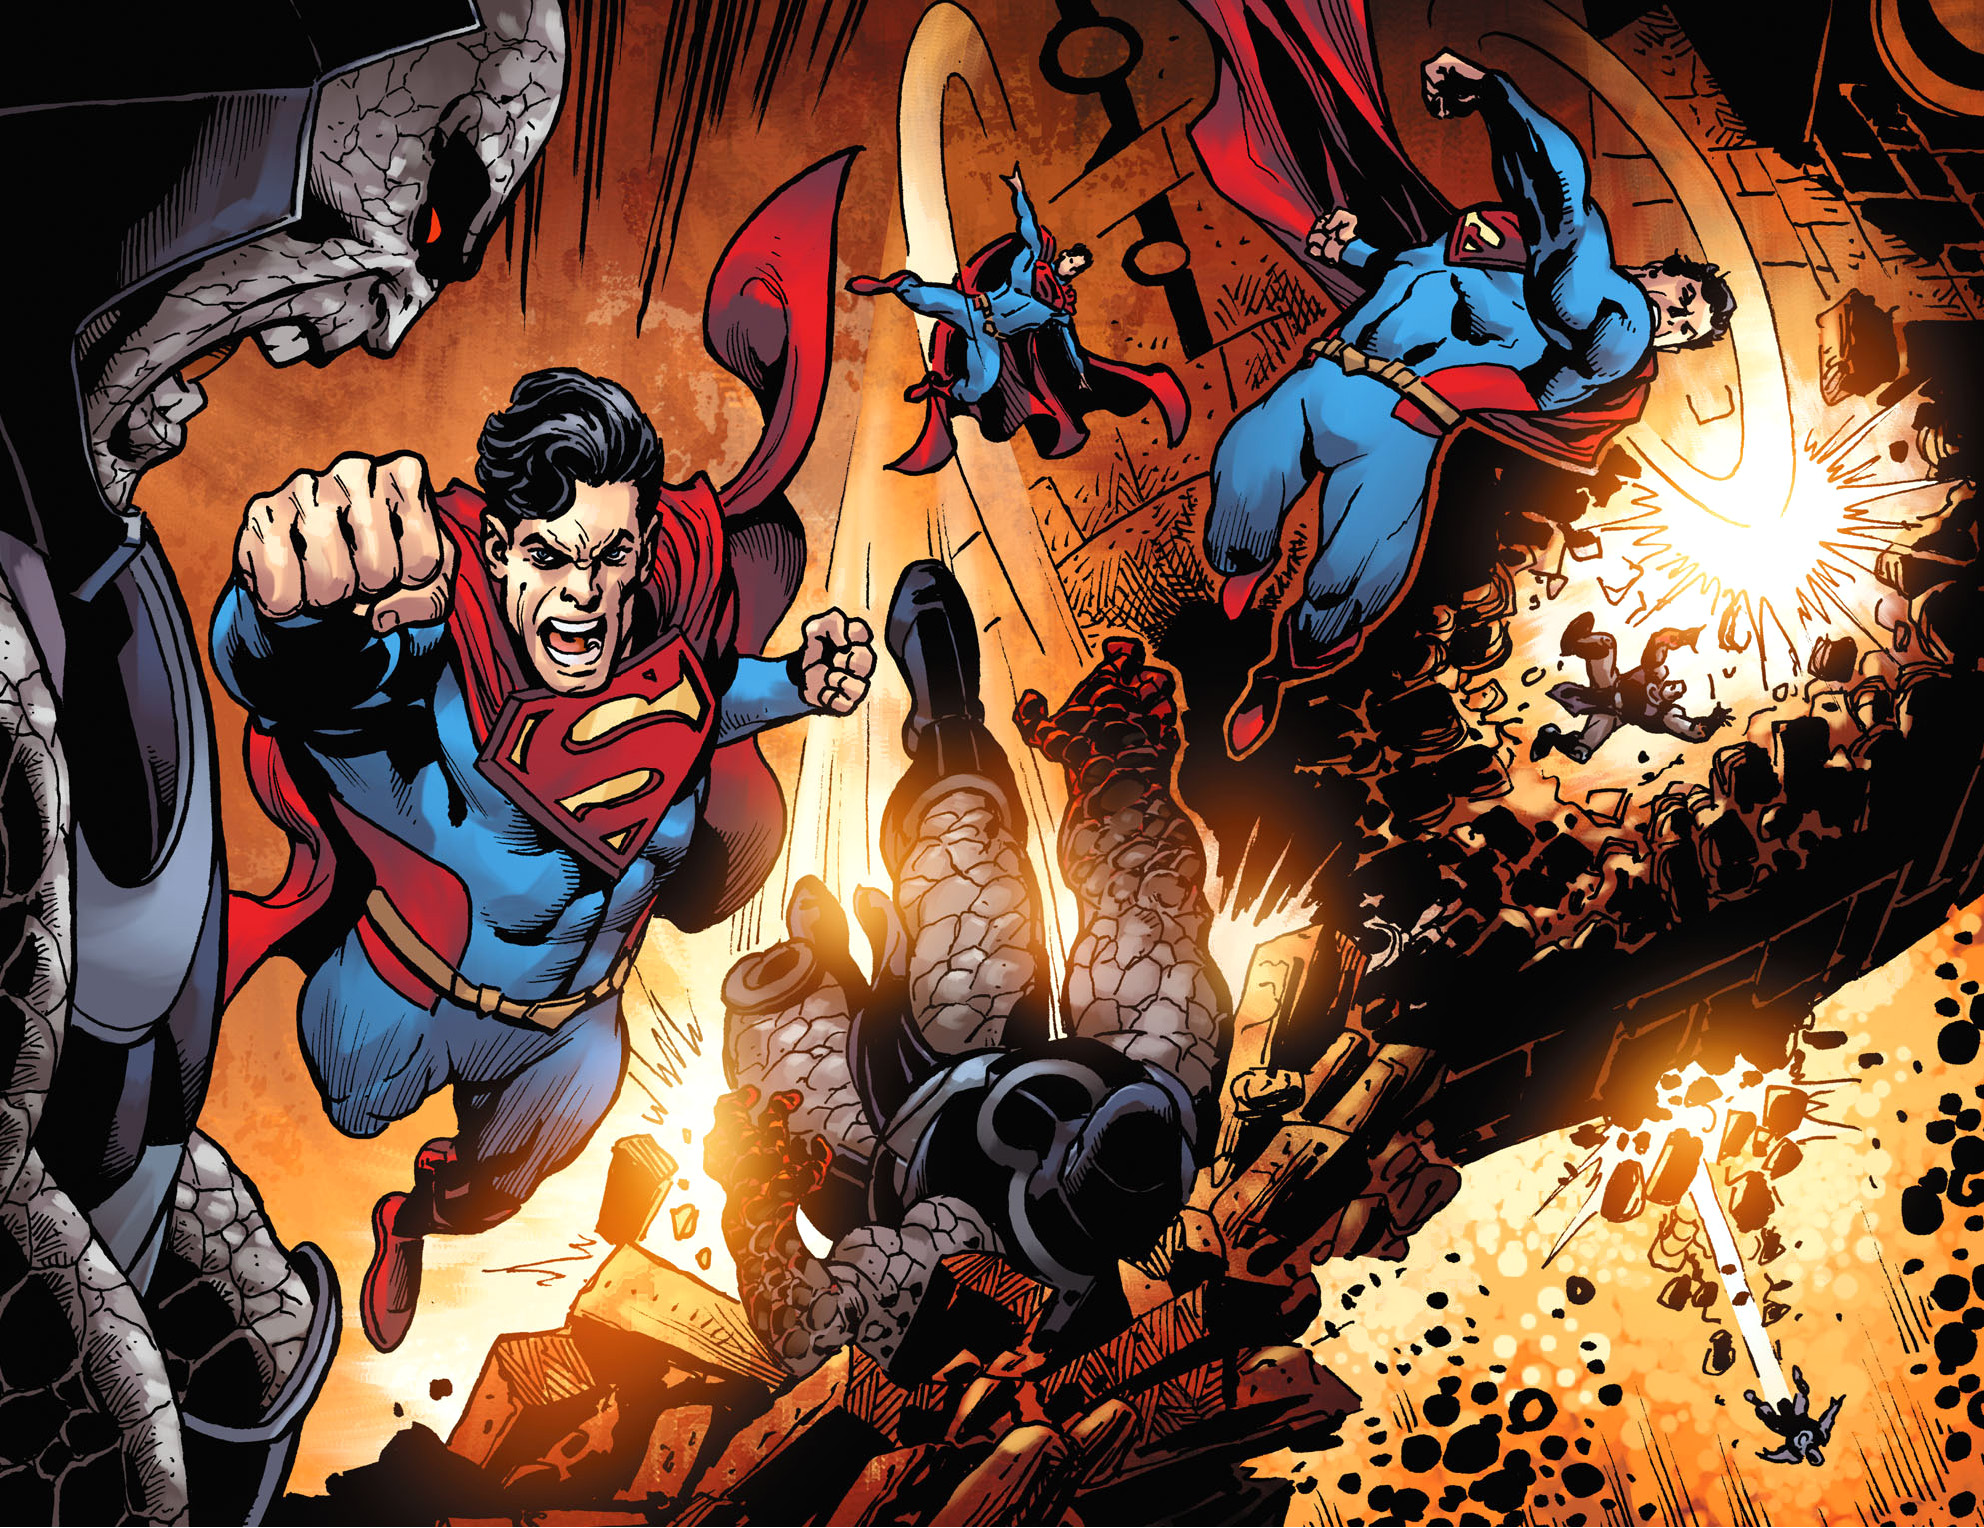 Superman VS Darkseid (Injustice Gods Among Us) | Comicnewbies